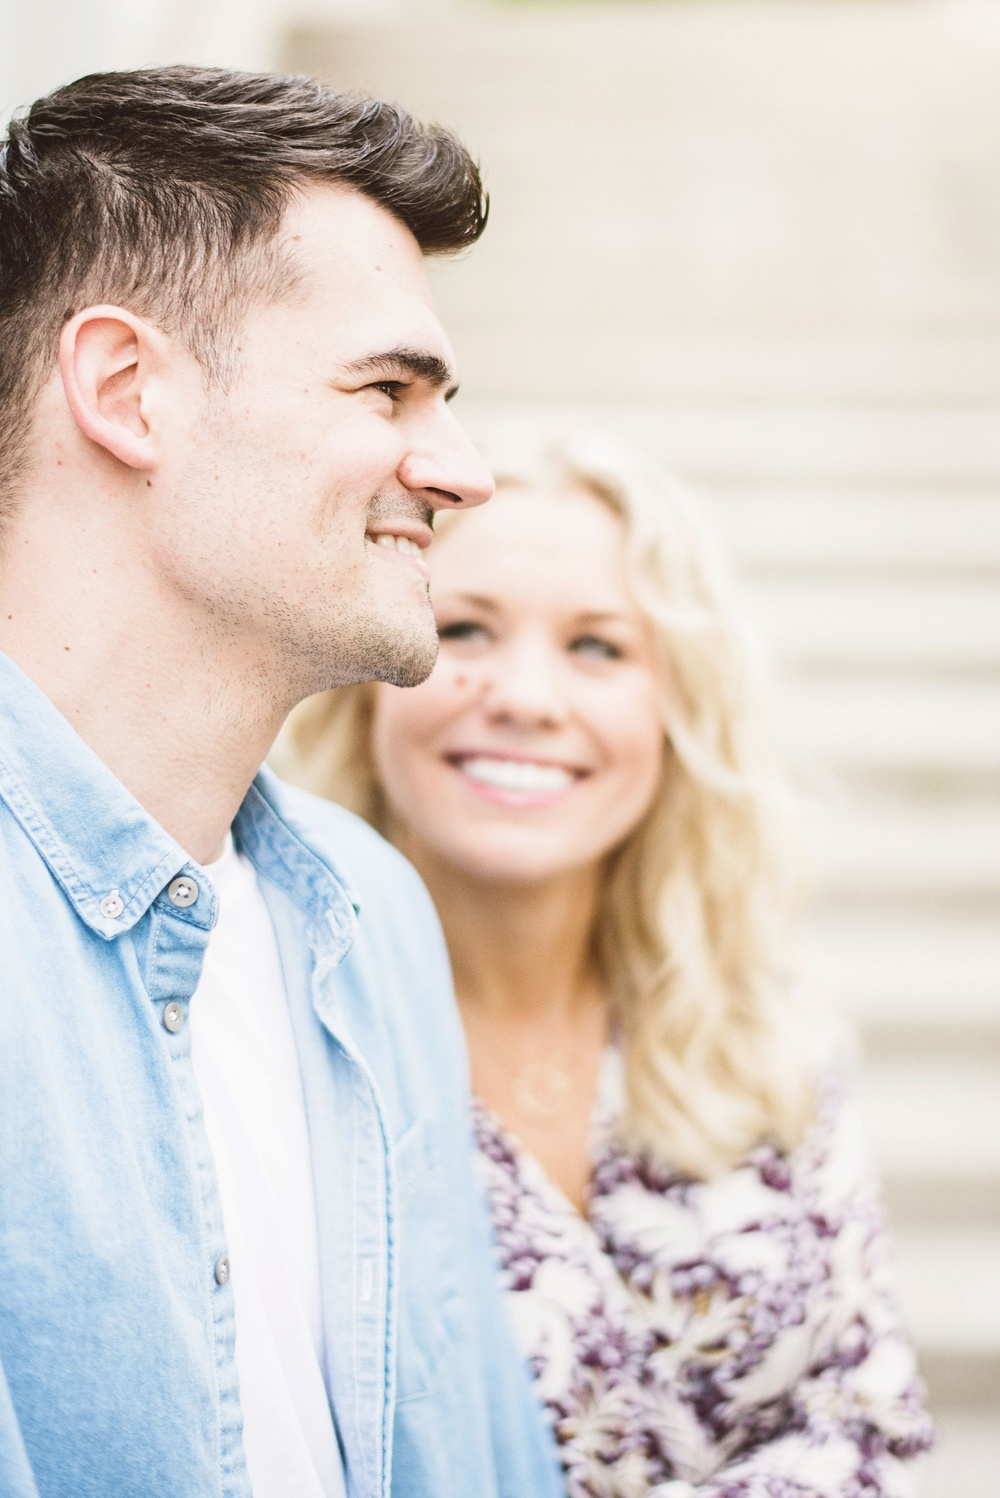 erika_alexa_Minneapolis_cedar_lake_engagement_lucas_botz_photography_0001.jpg